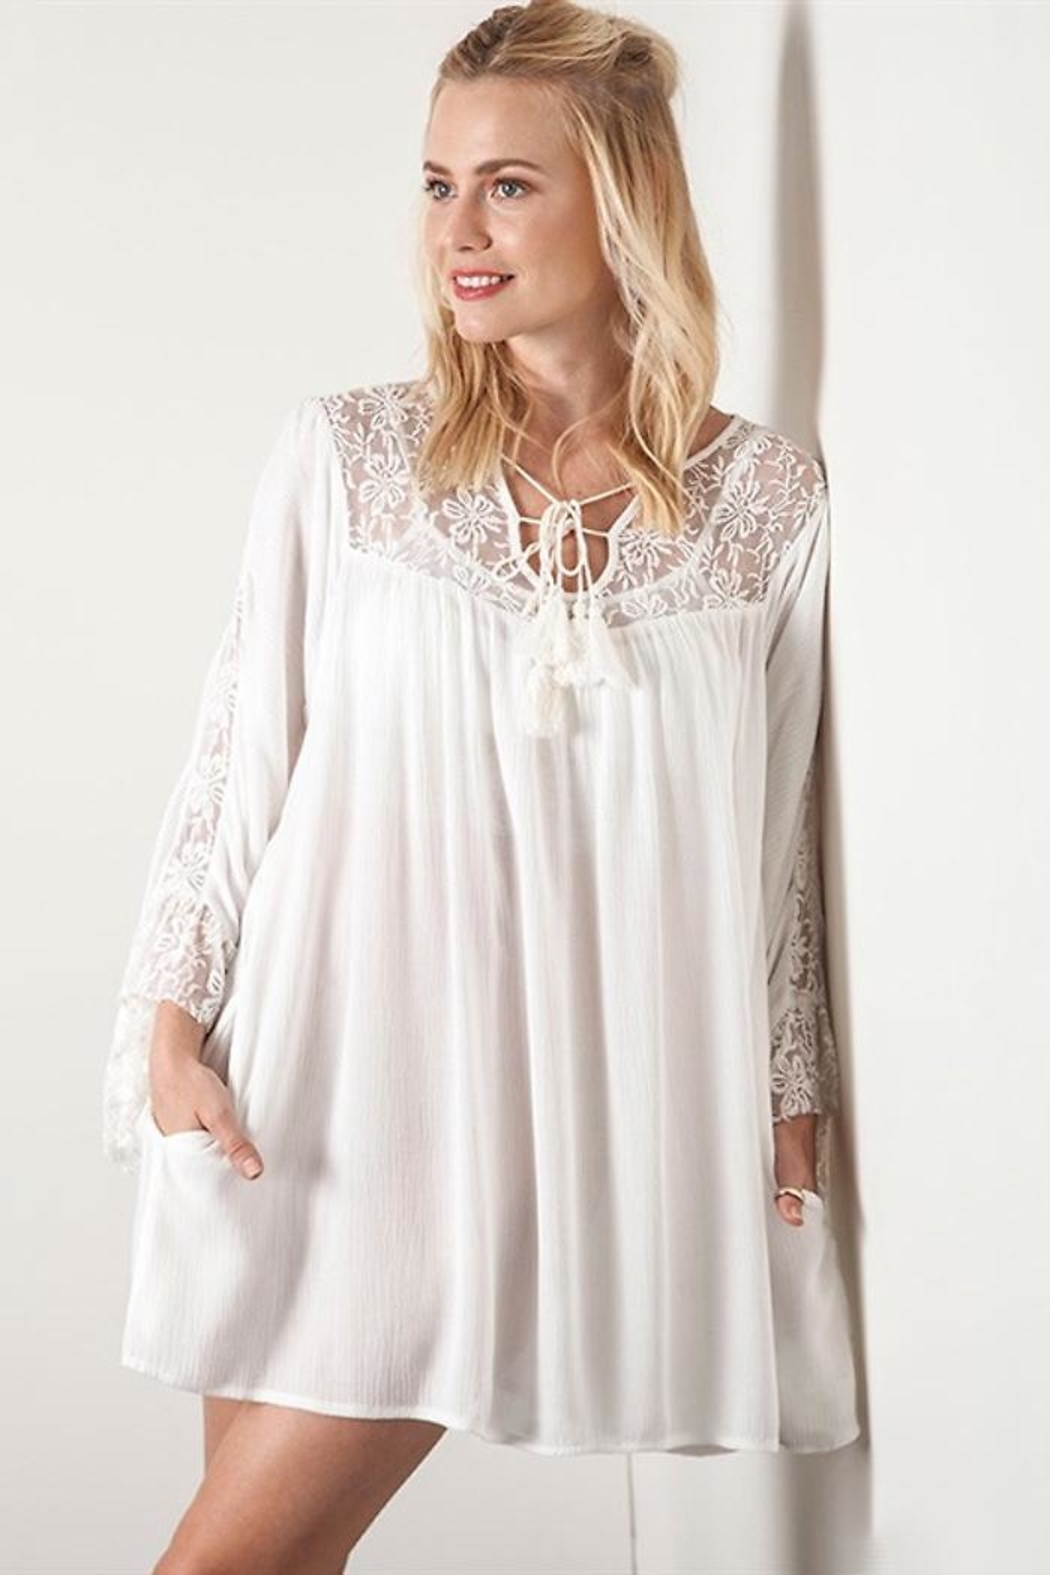 People Outfitter White Lace Dress - Main Image